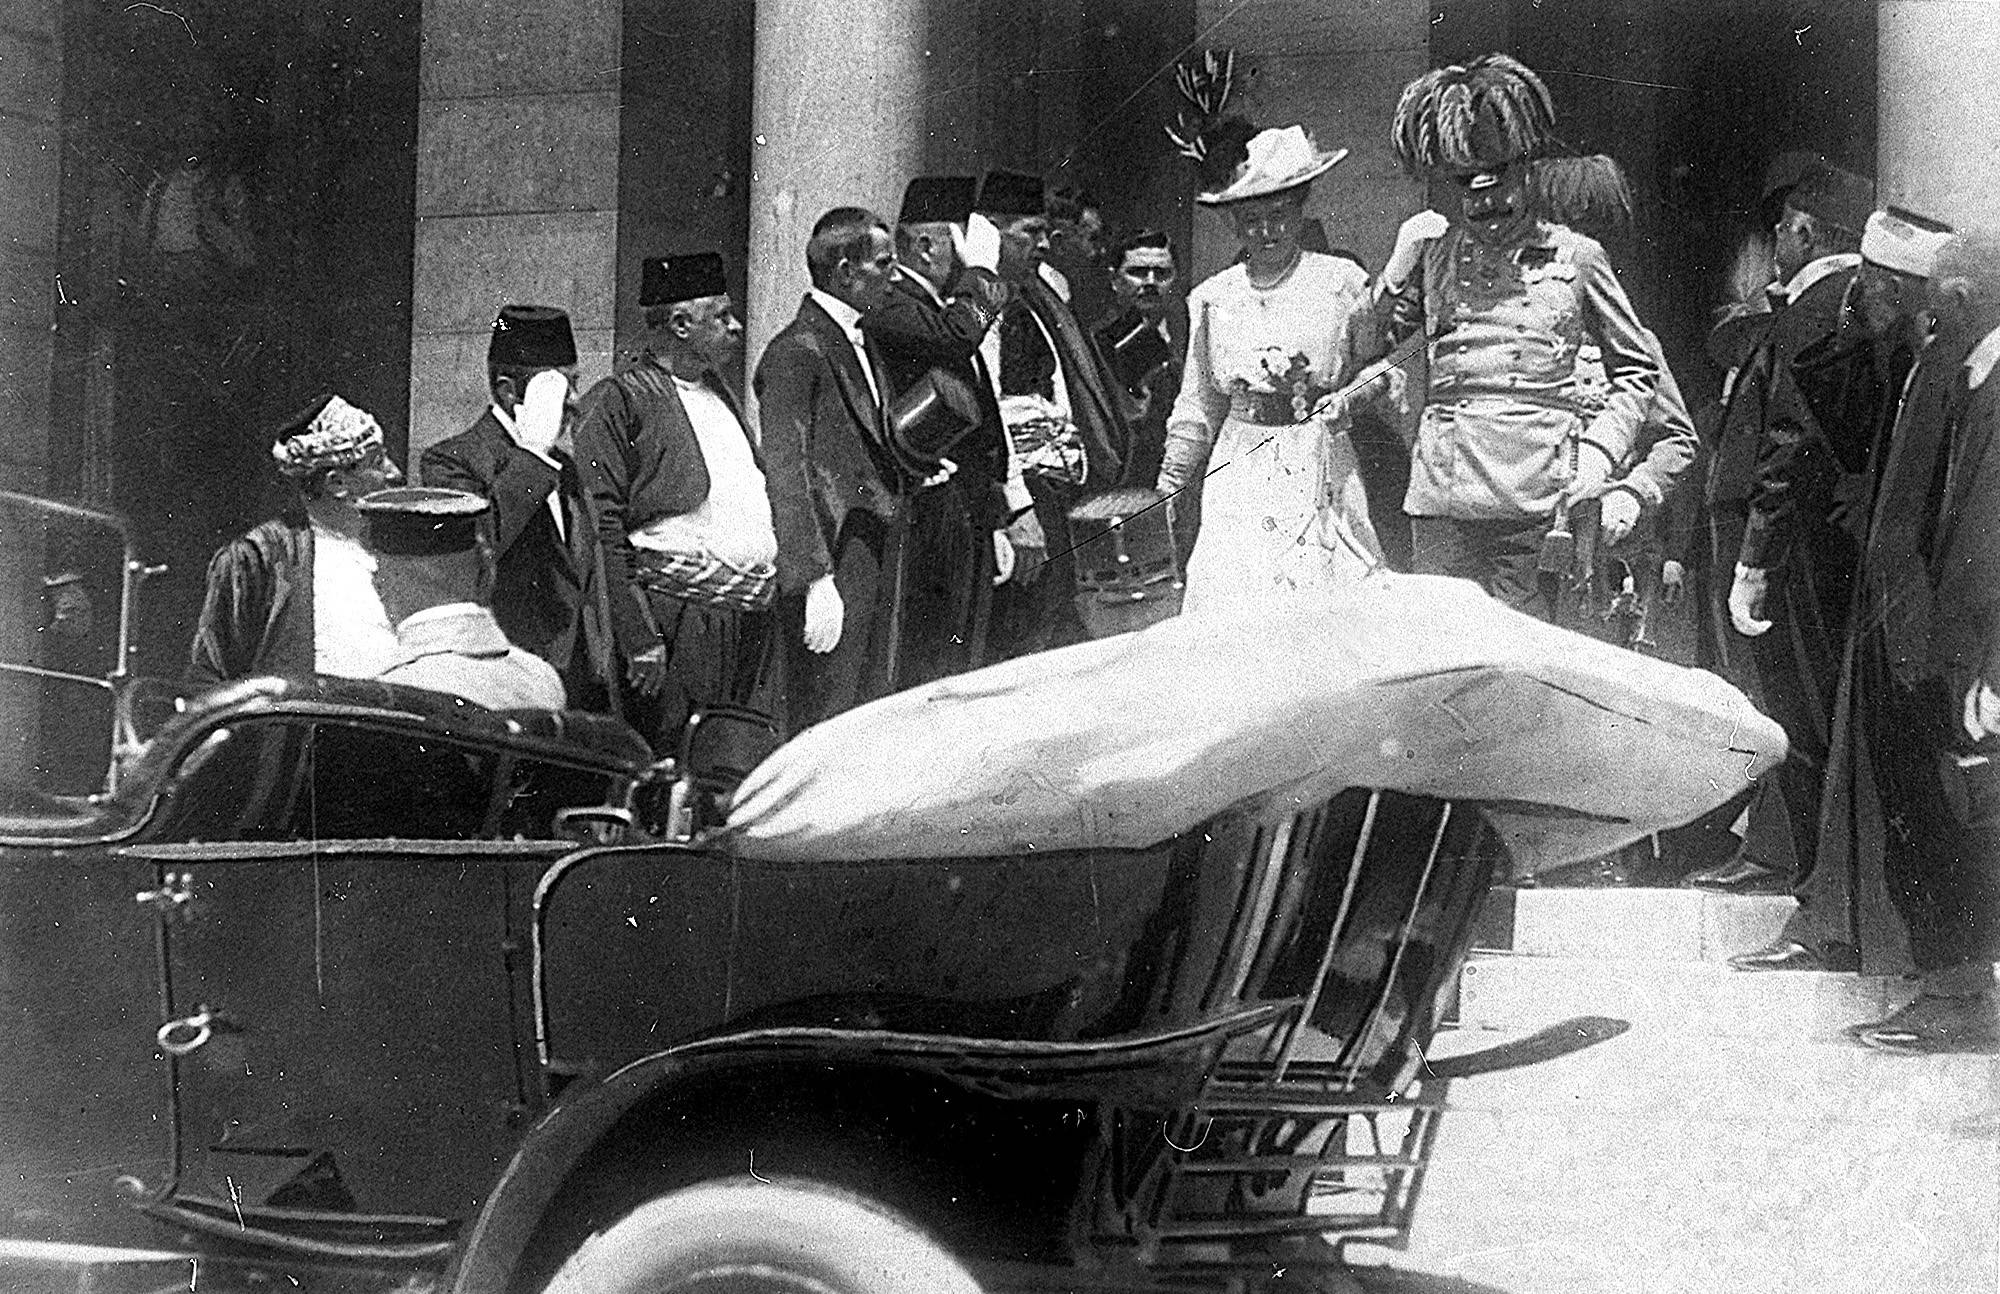 ONE OF 100: In this June 28, 1914, file photo, the Archduke of Austria Franz Ferdinand, center right, and his wife, Sophie, center left, walk to their a car in Sarajevo. This photo was taken minutes before the assassination of the archduke and his wife, an event that set off a chain reaction of events which would eventually lead to World War I.